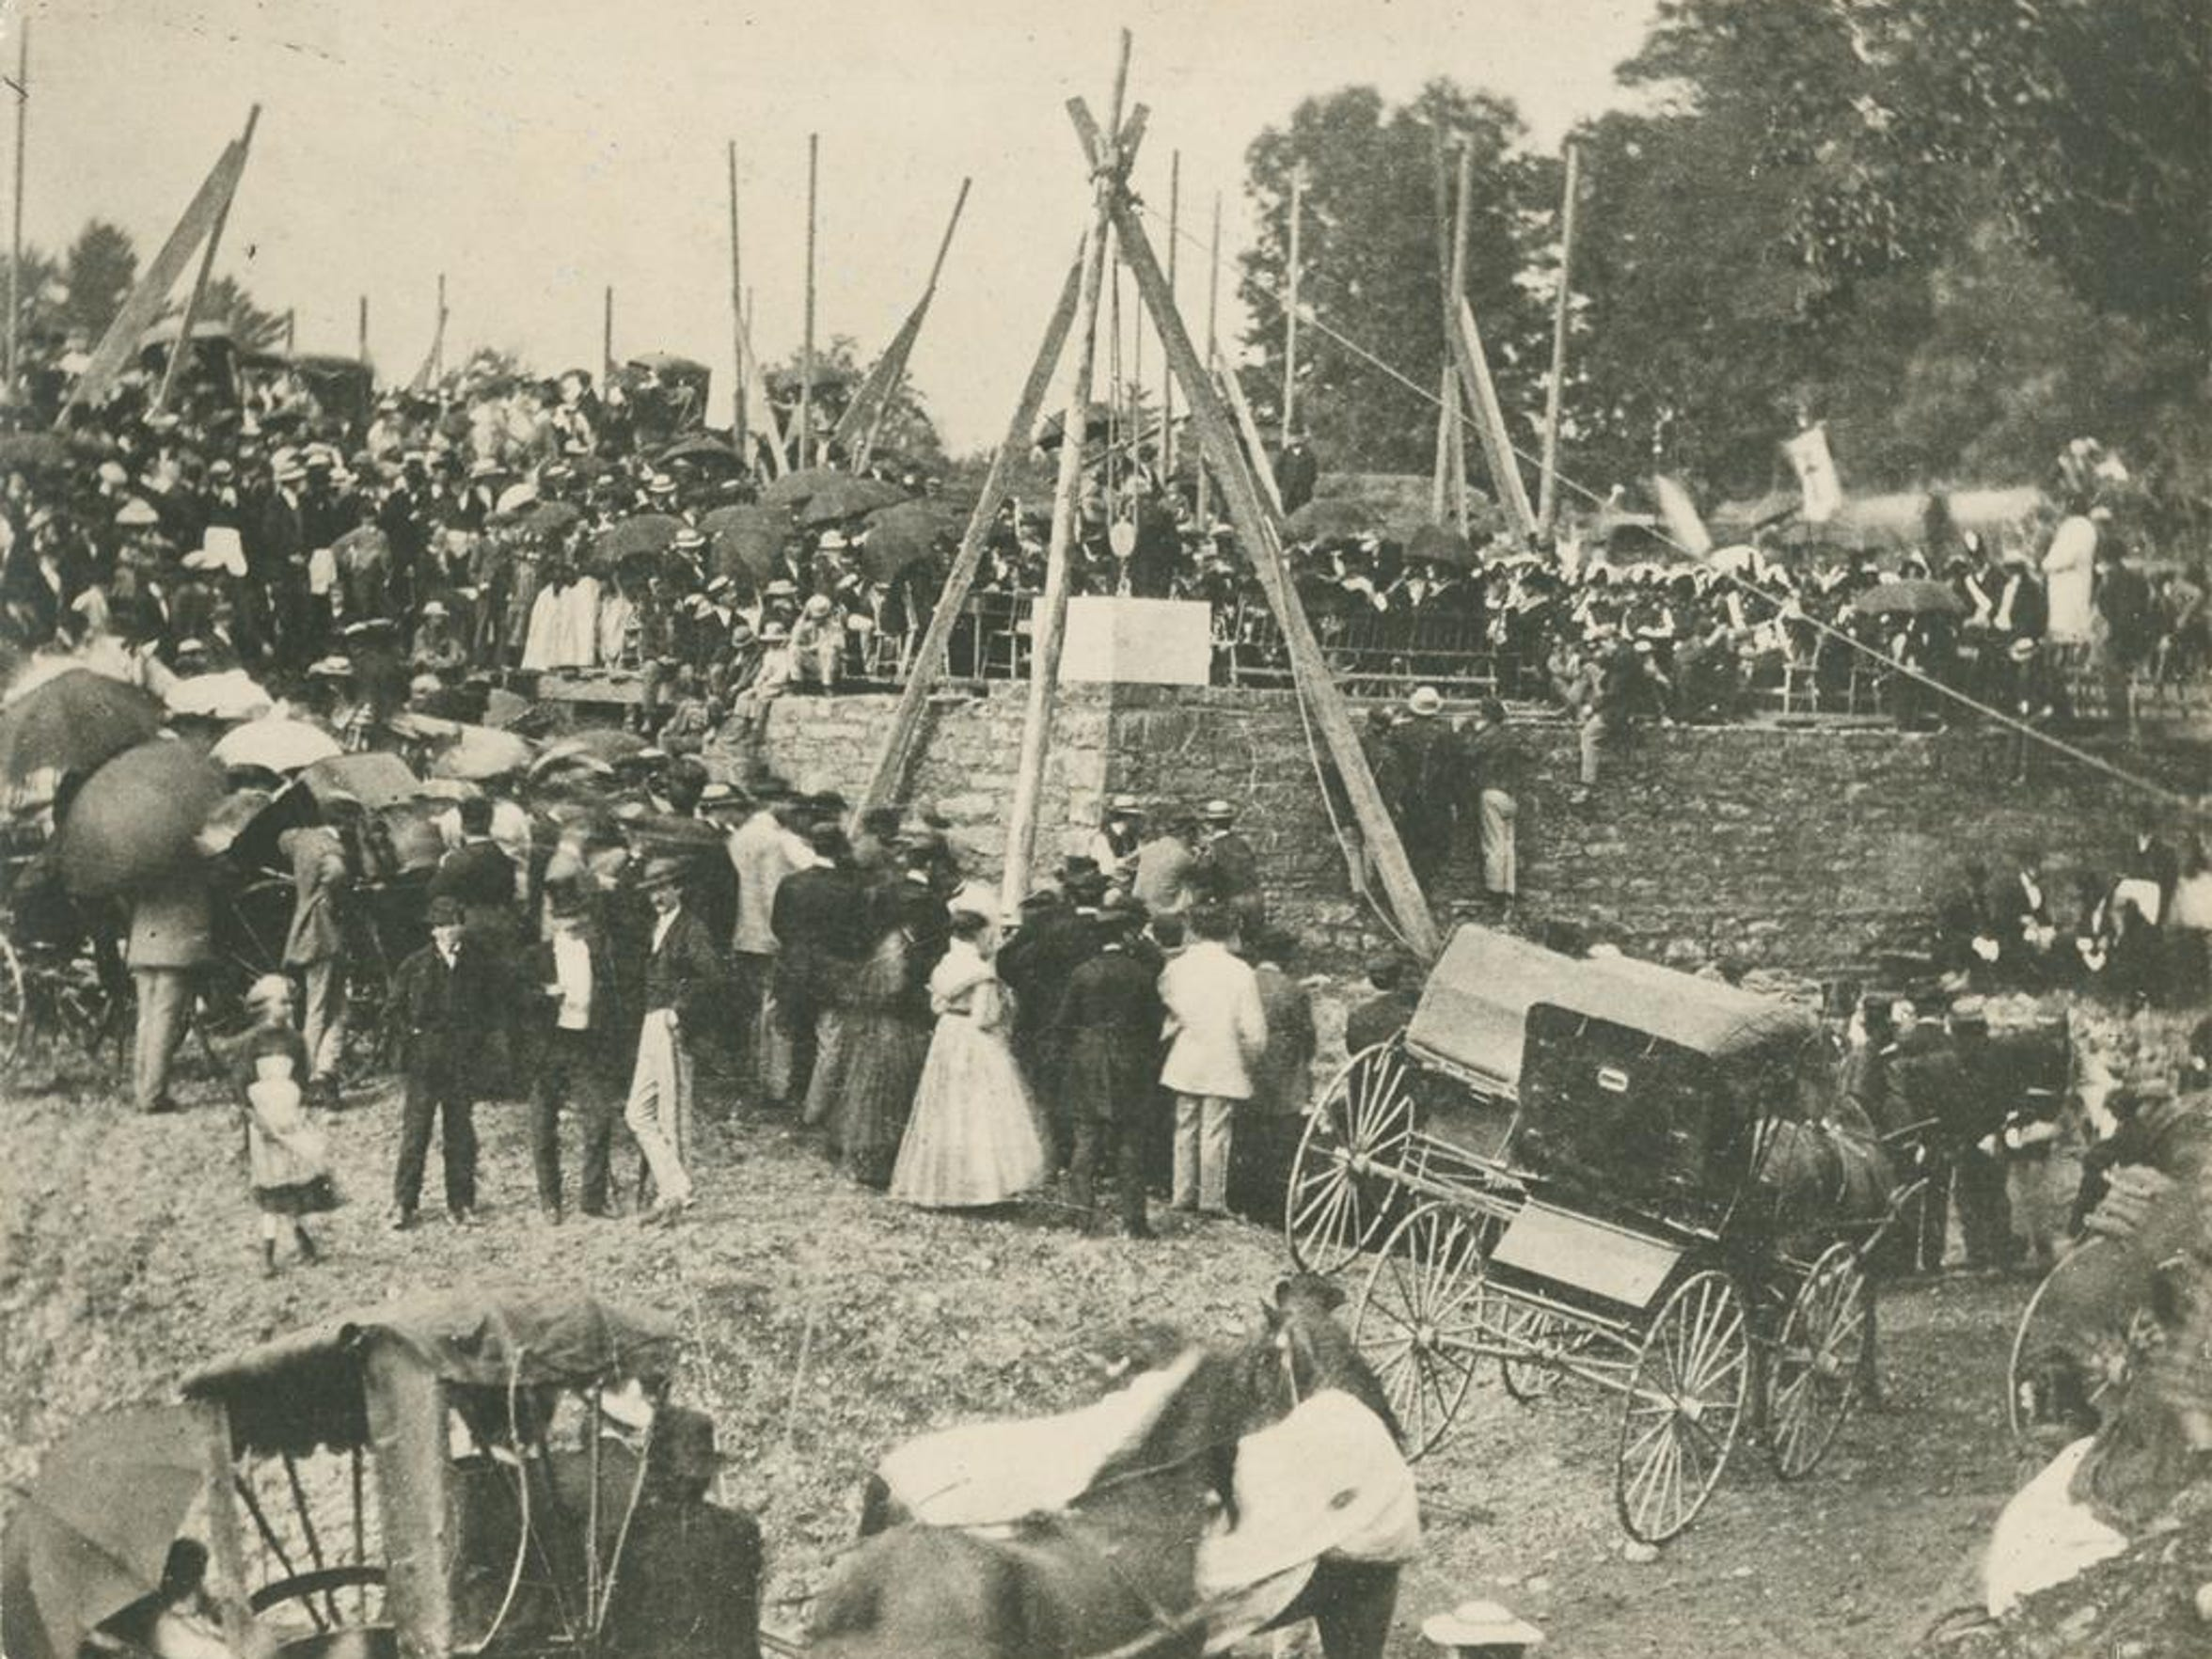 The cornerstone of McGraw Hall was laid in 1869 with